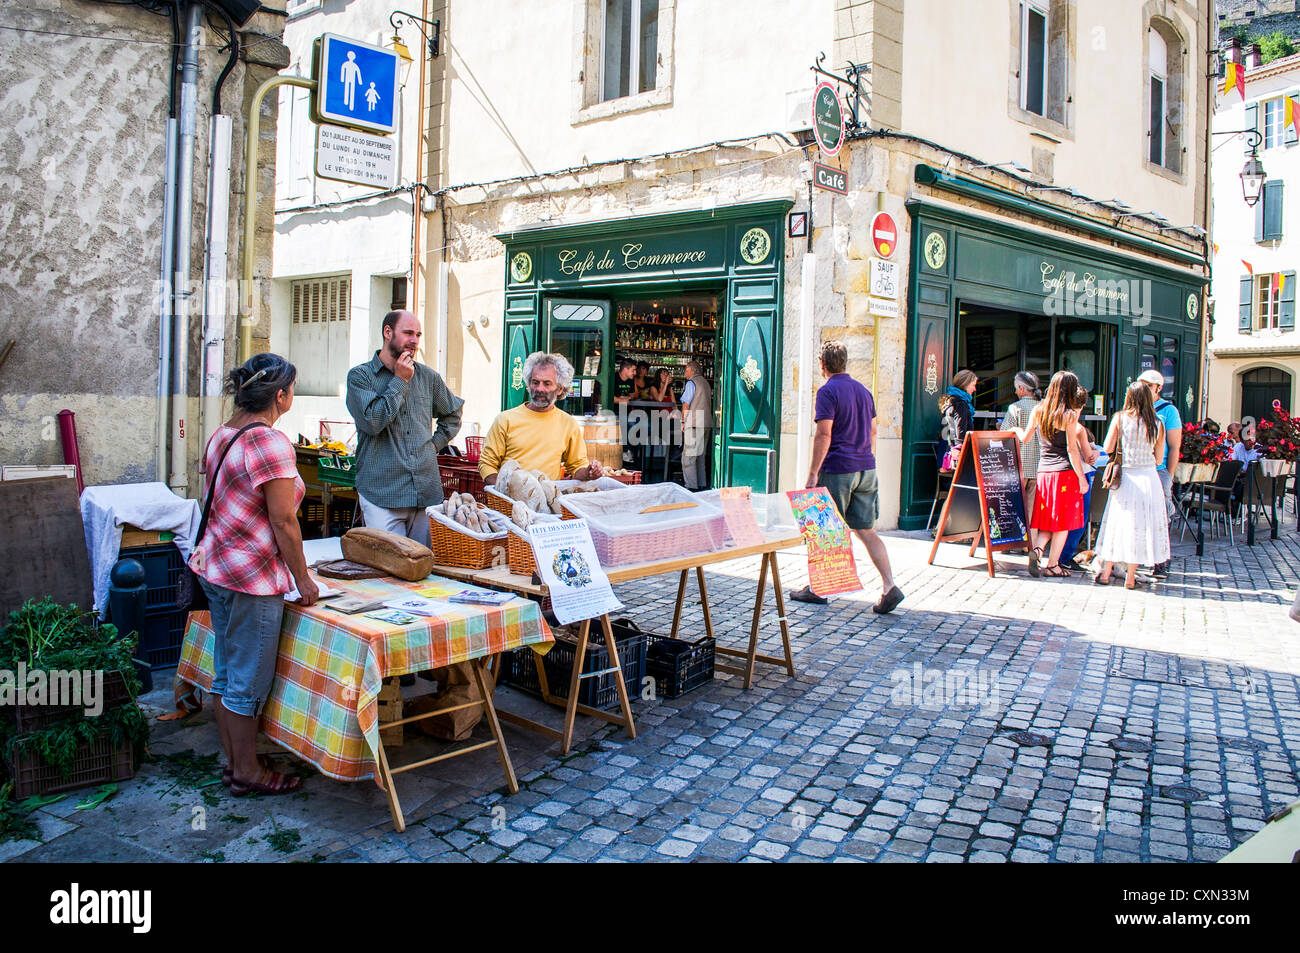 Artisan bread sellers at a corner stall on market day in the medieval town of Foix, Midi-Pyrenees, France - Stock Image